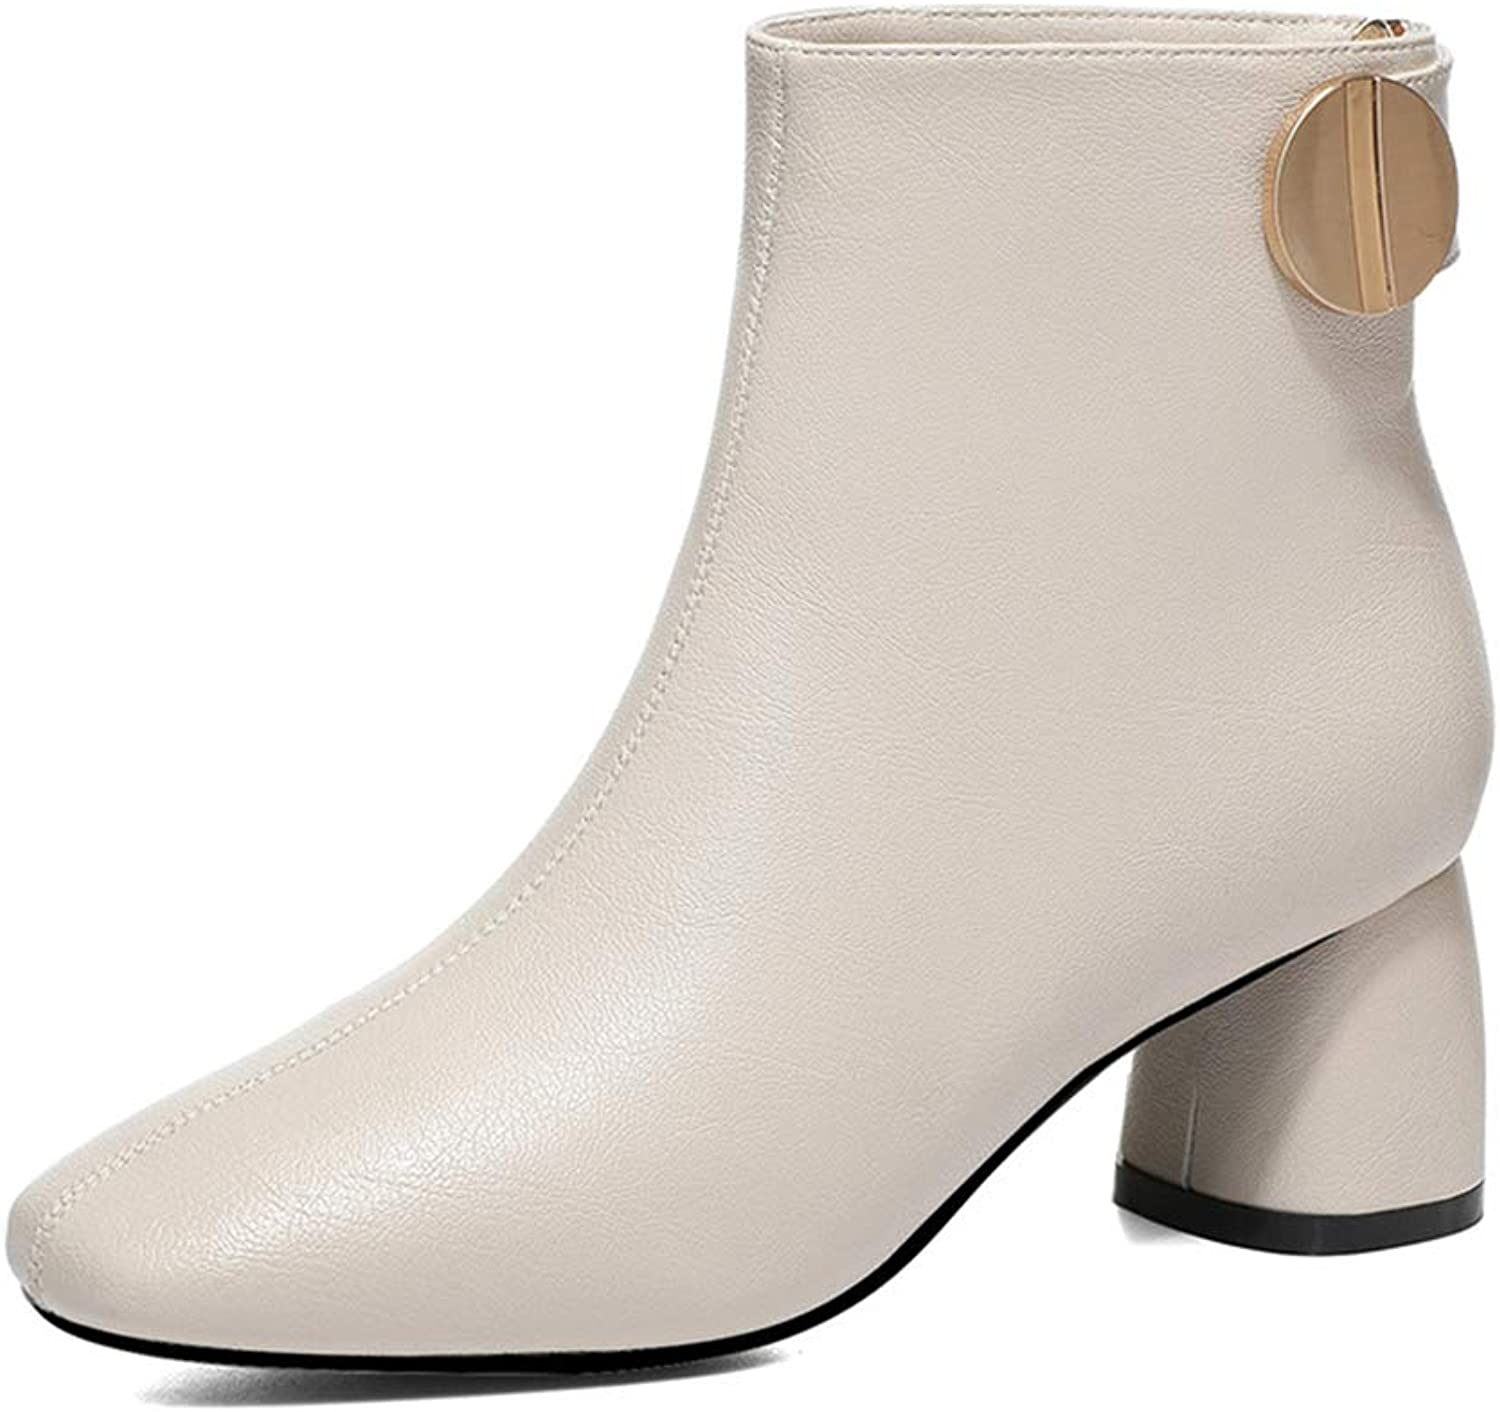 Women's Booties, Thick Heel Plus Velvet Leather Martin Boots Fall Winter Mid Heel Ladies Martin Boots (color   A, Size   37)